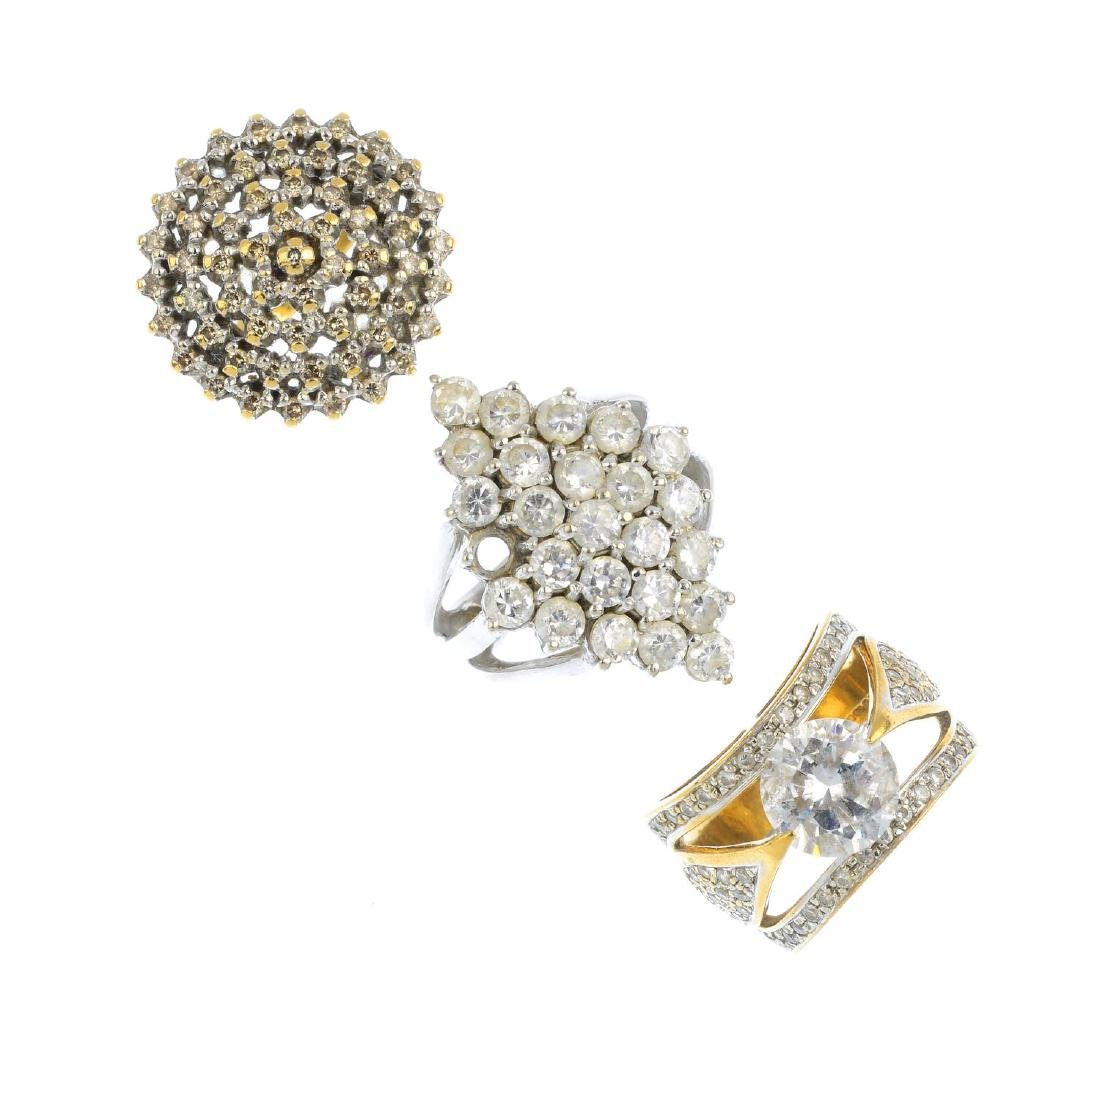 Seven 9ct gold gem-set rings. To include a diamond